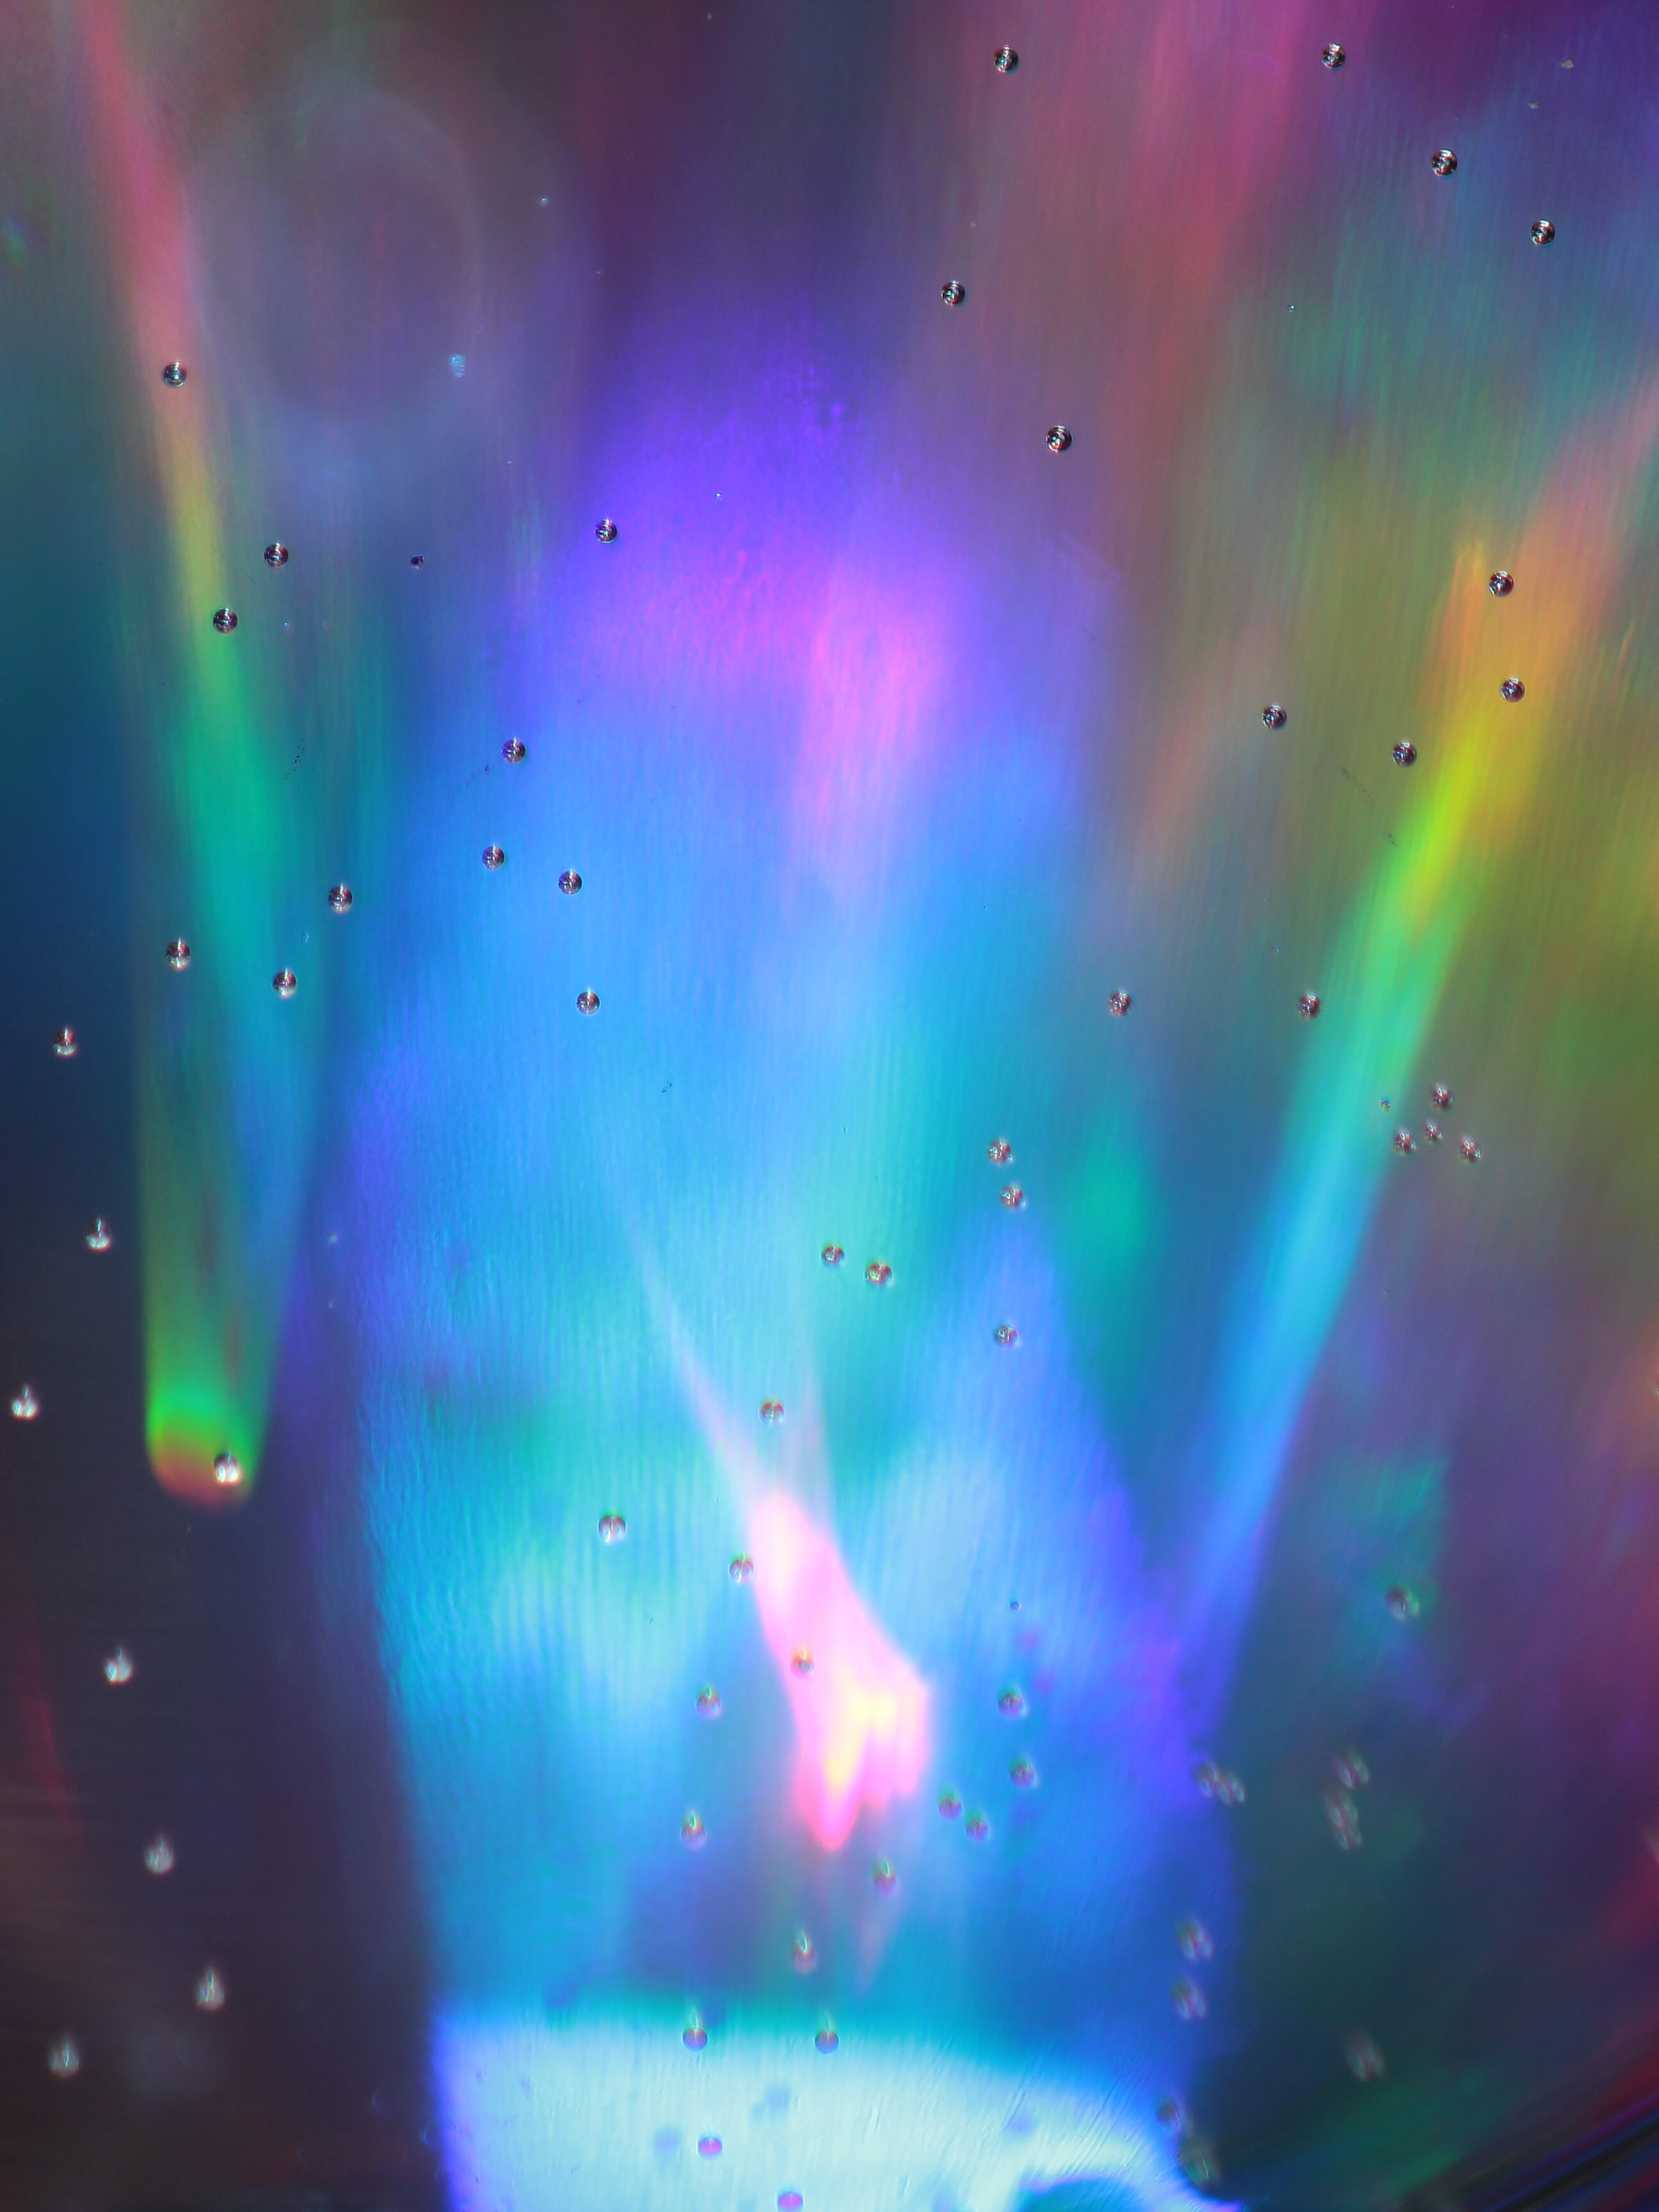 74525 download wallpaper Abstract, Glow, Lines, Stains, Spots, Multicolored, Motley, Bubbles screensavers and pictures for free